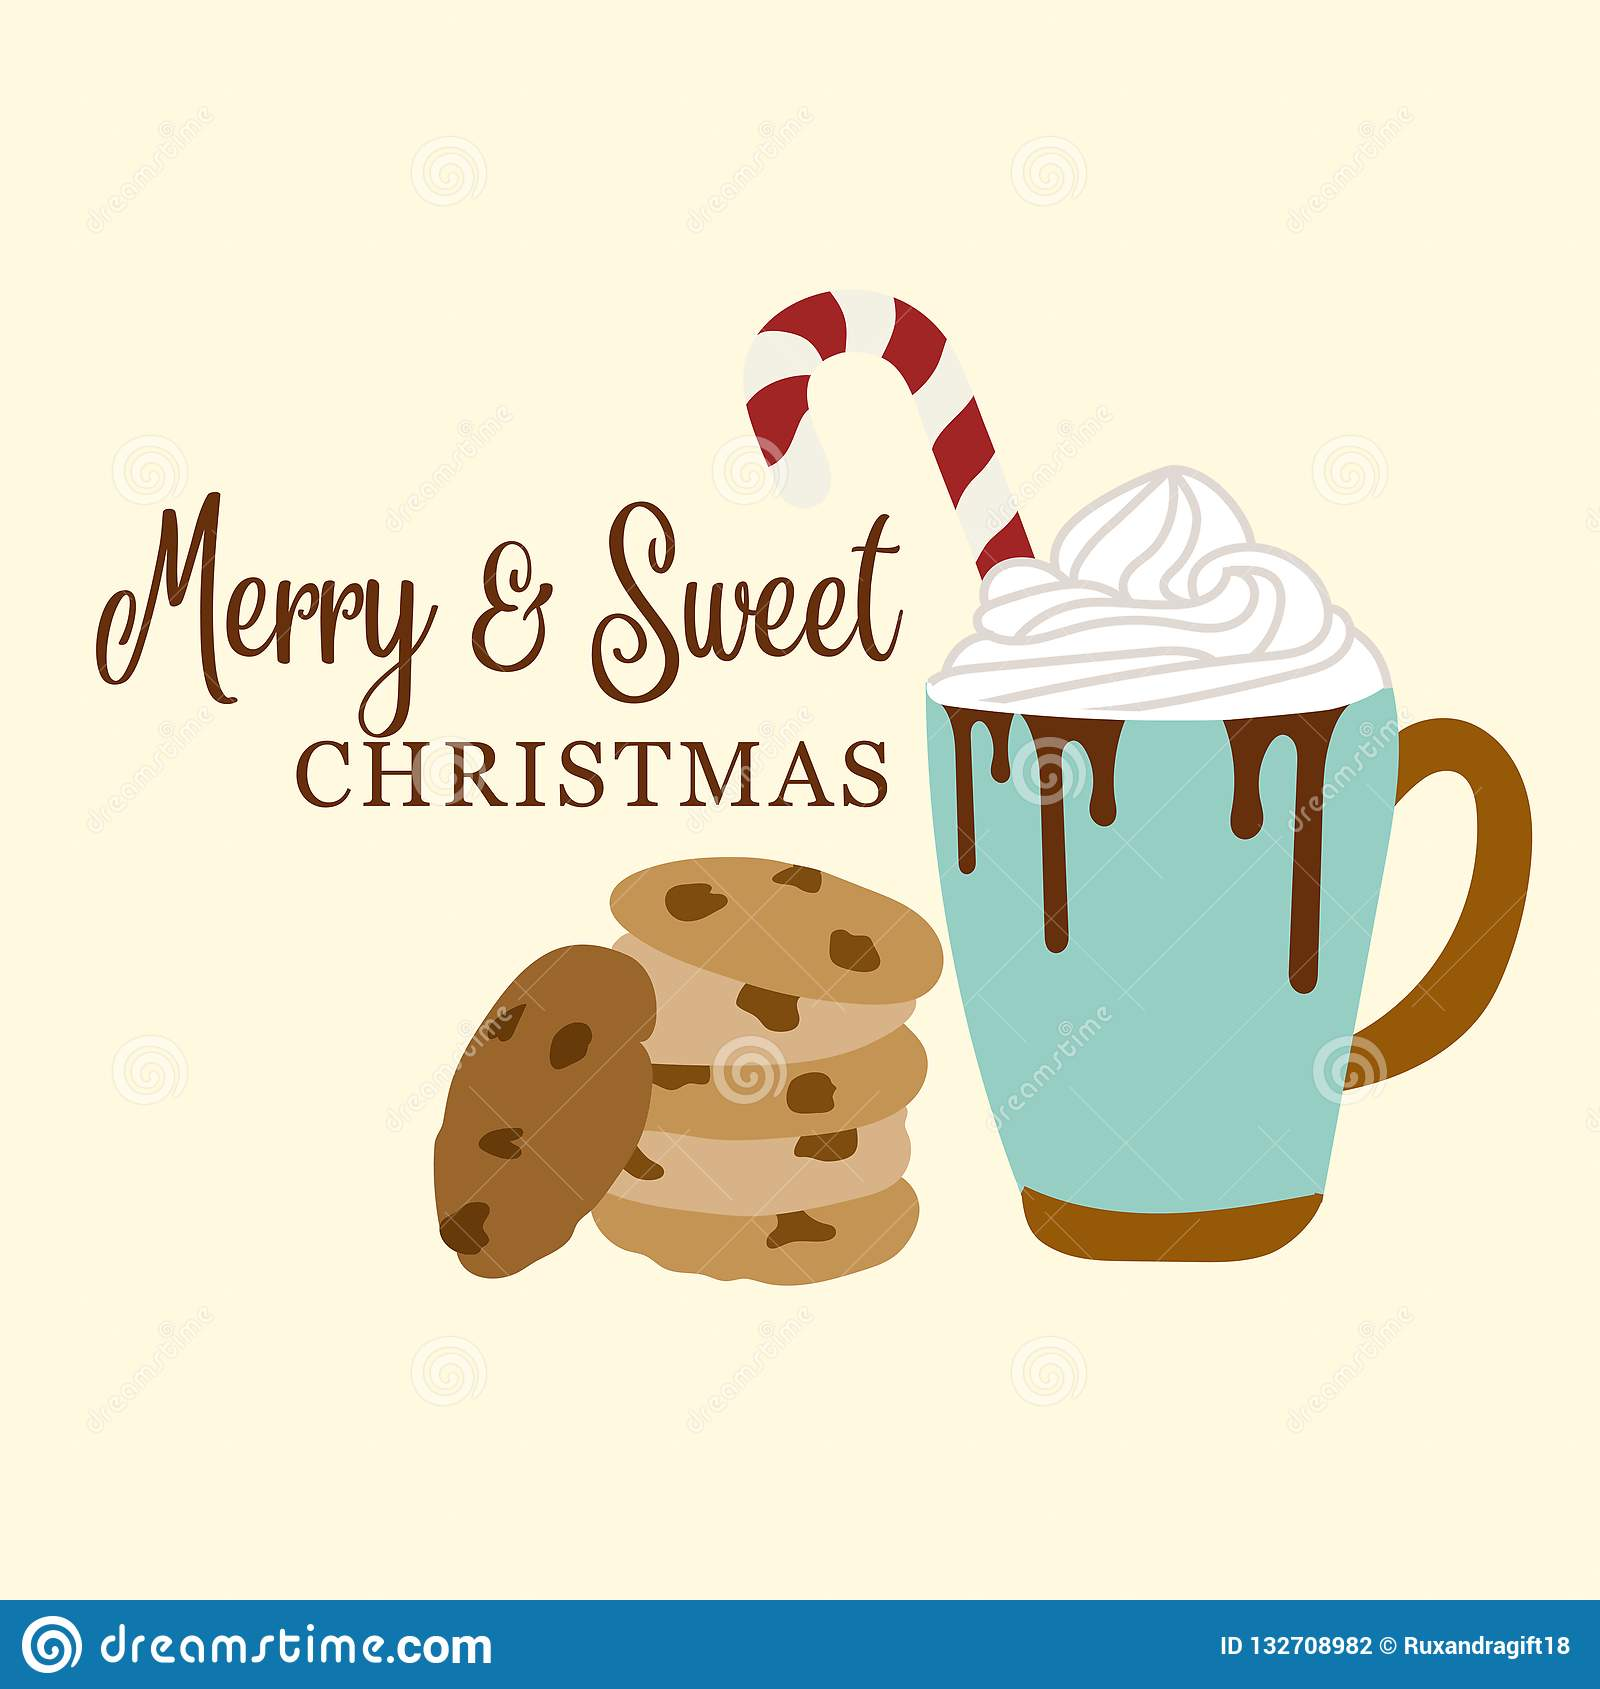 Cute Christmas card with hot chocolate and cookies